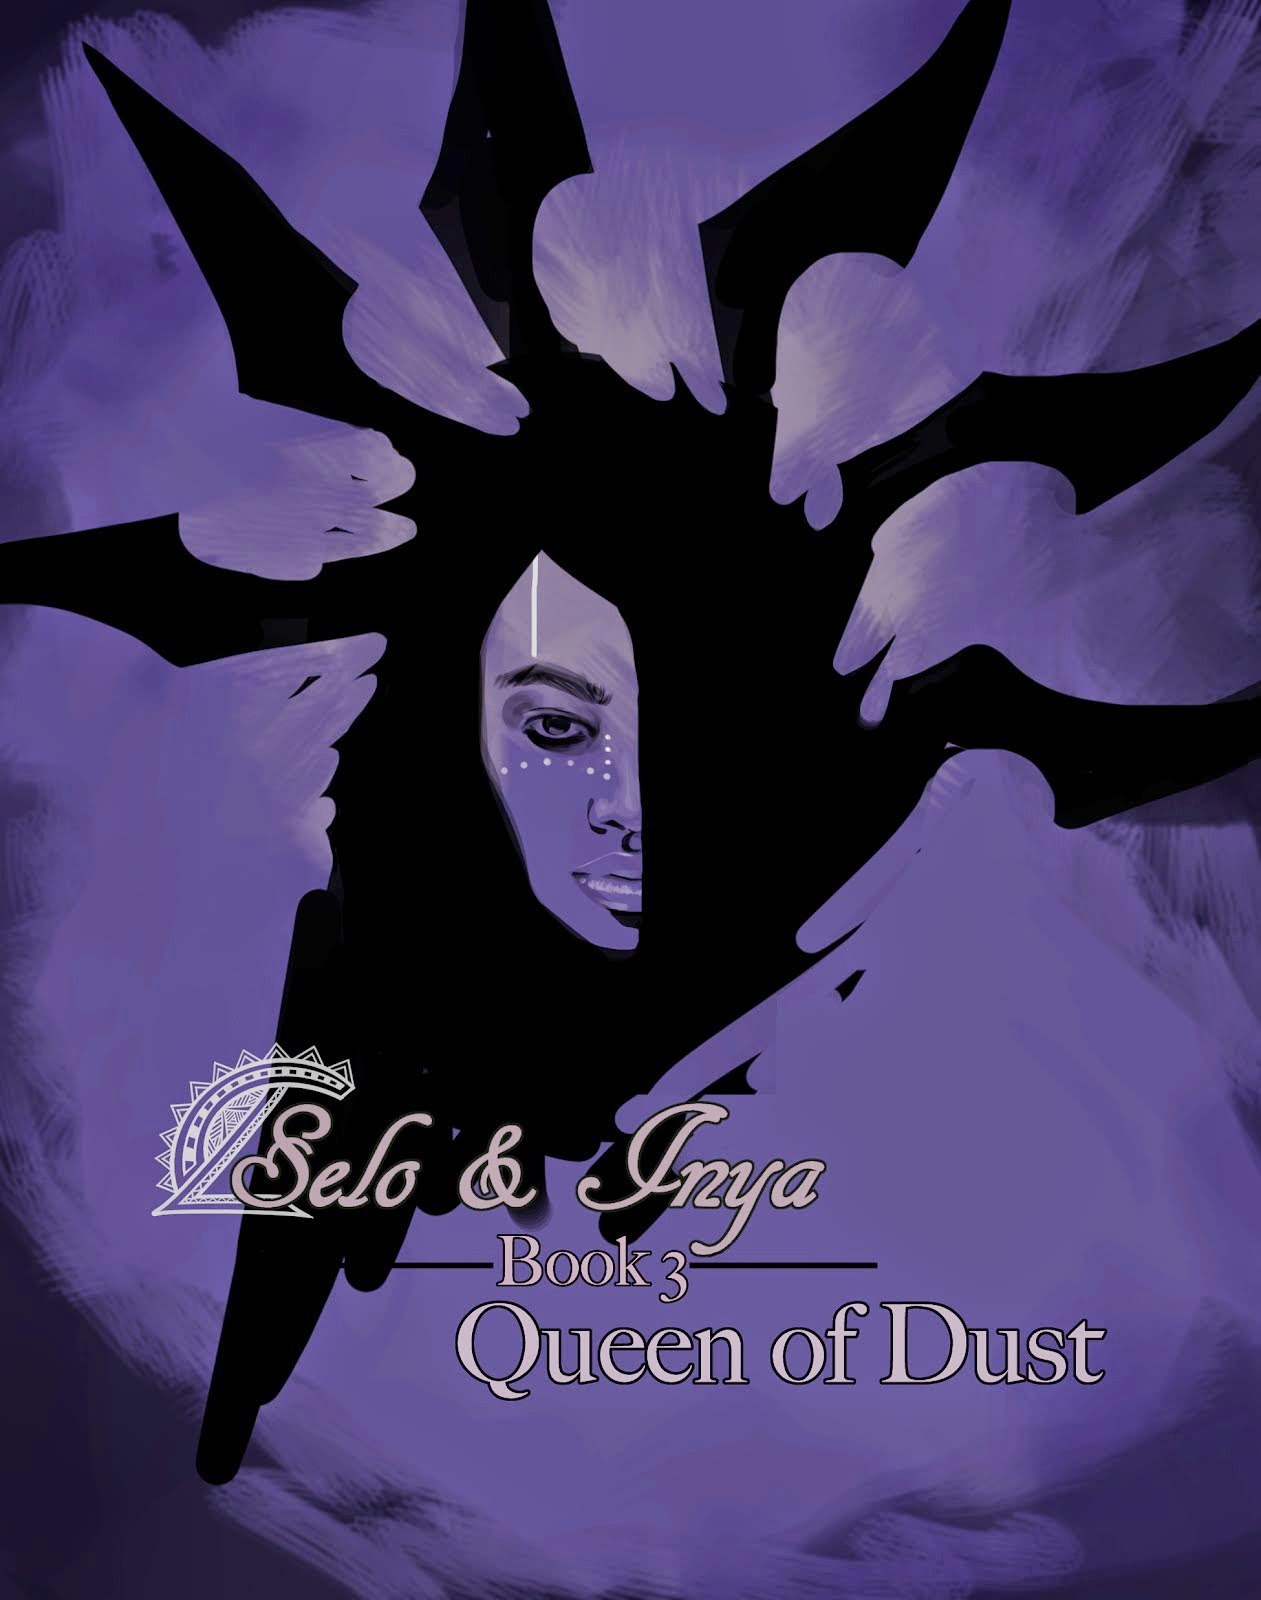 Queen of Dust